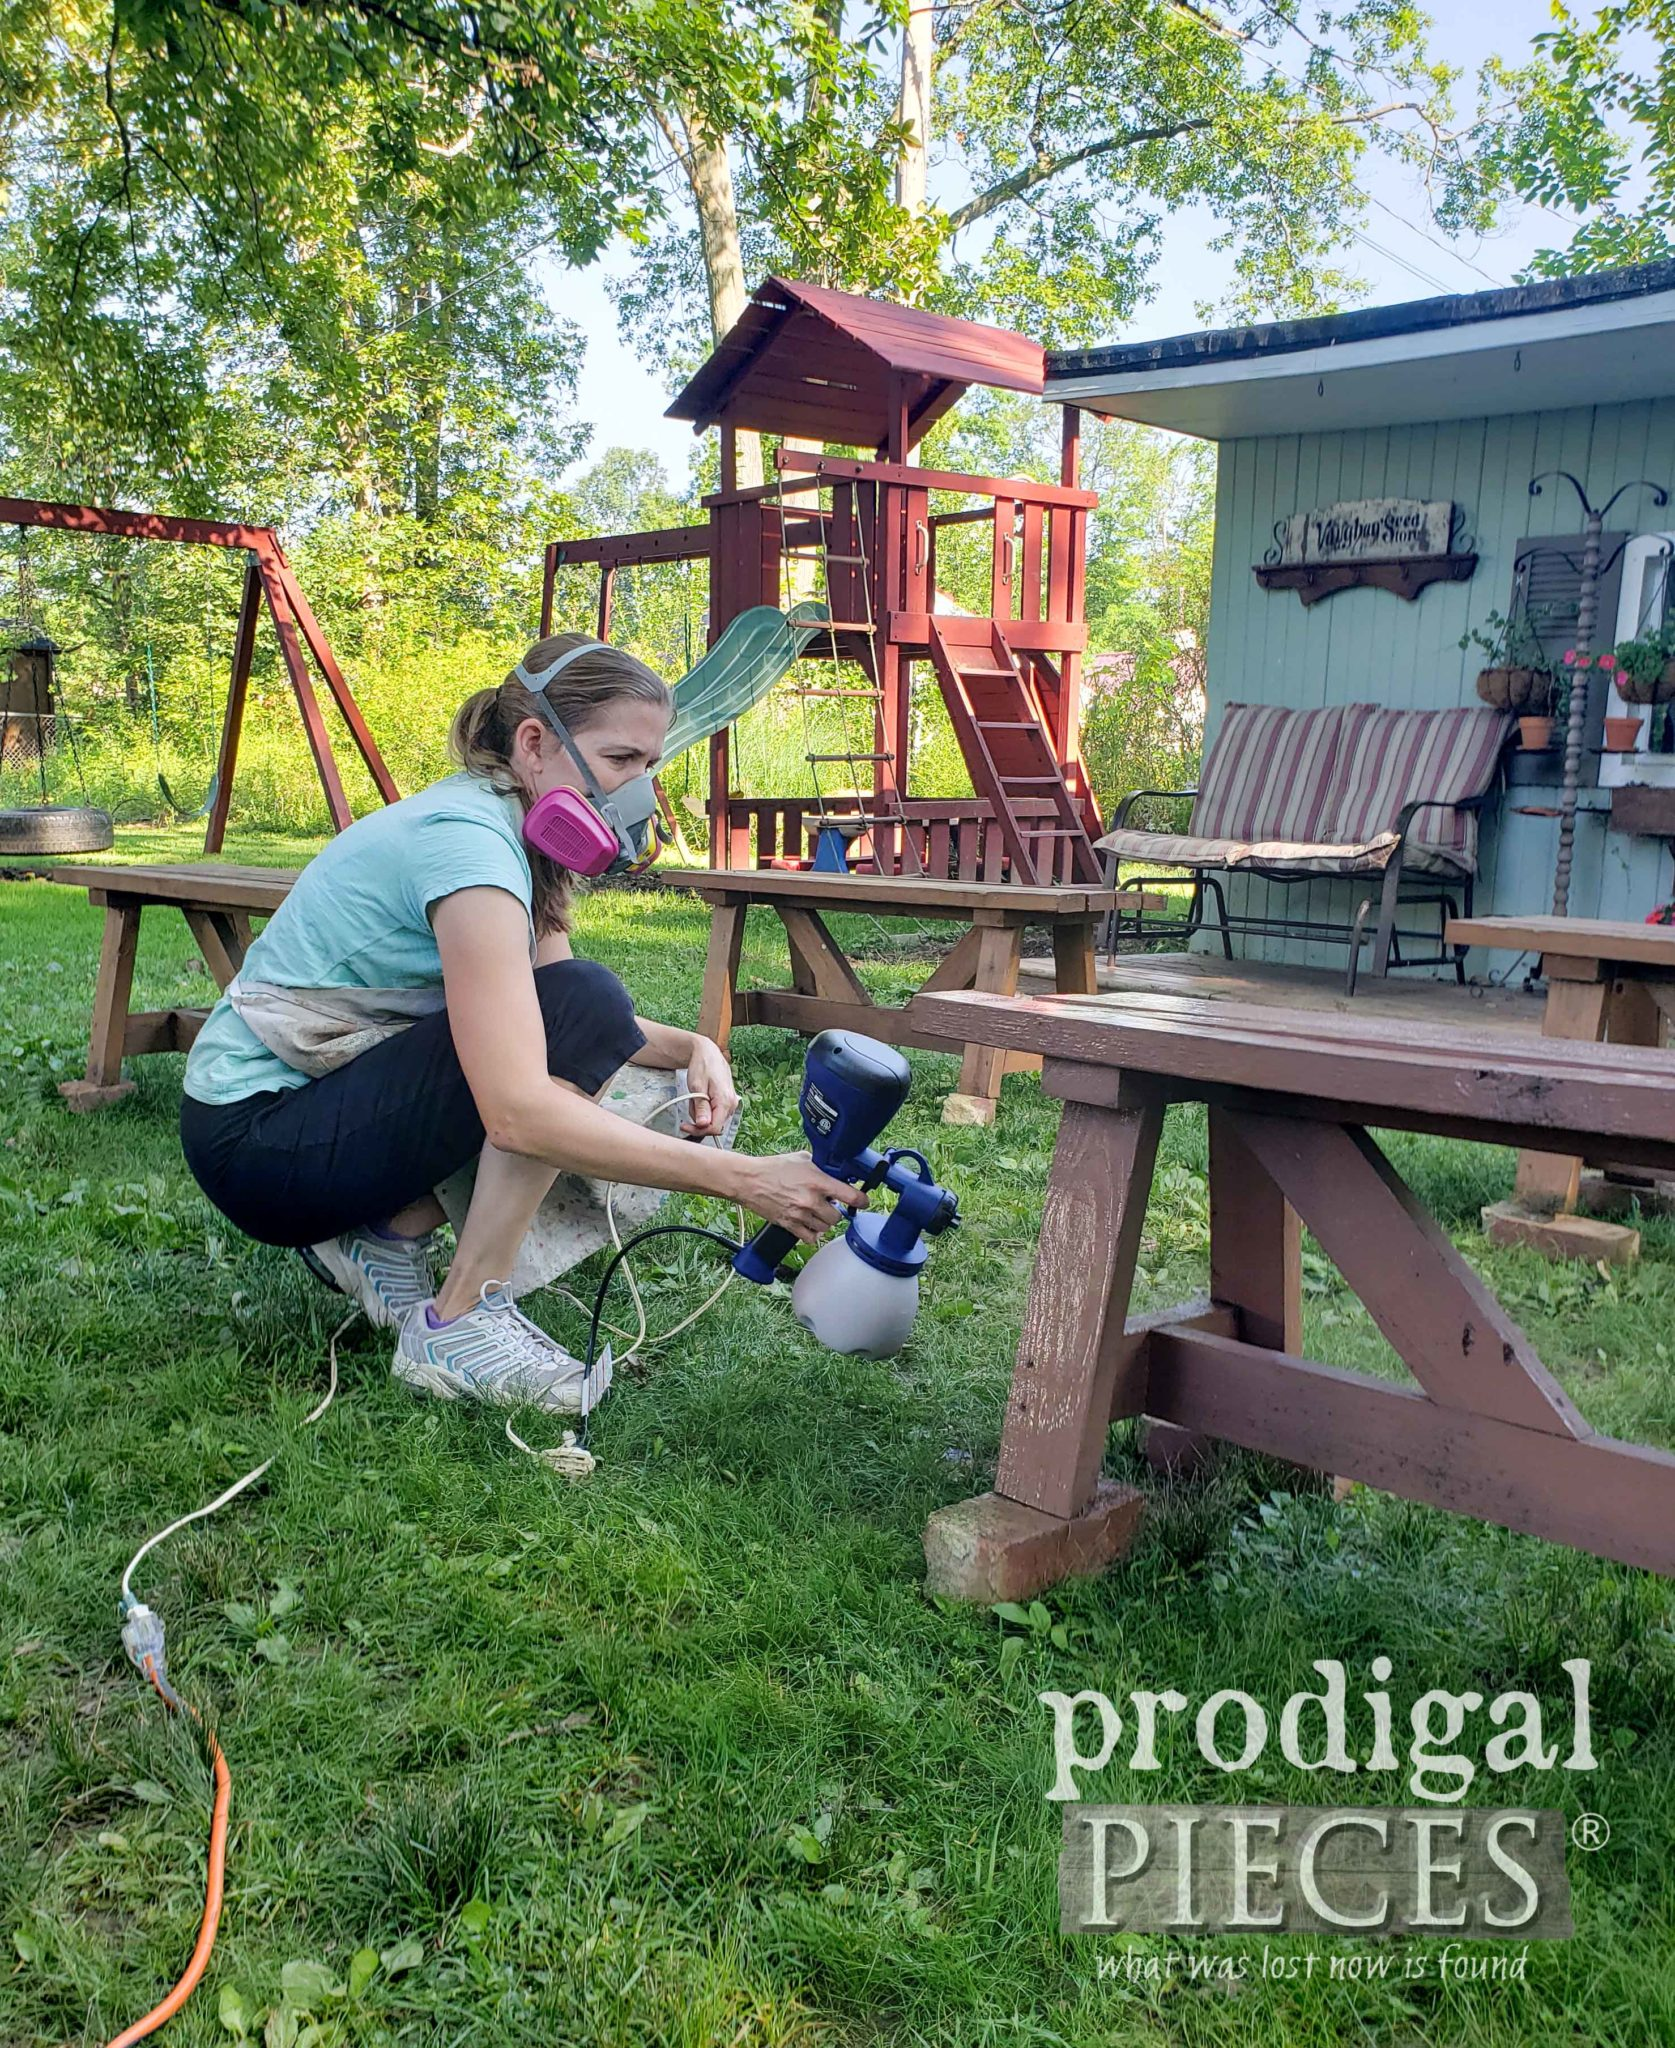 Spray Staining Outdoor Patio Benches with HomeRight Super Finish Max Sprayer by Larissa of Prodigal Pieces | prodigalpieces.com #prodigalpieces #diy #outdoor #diy